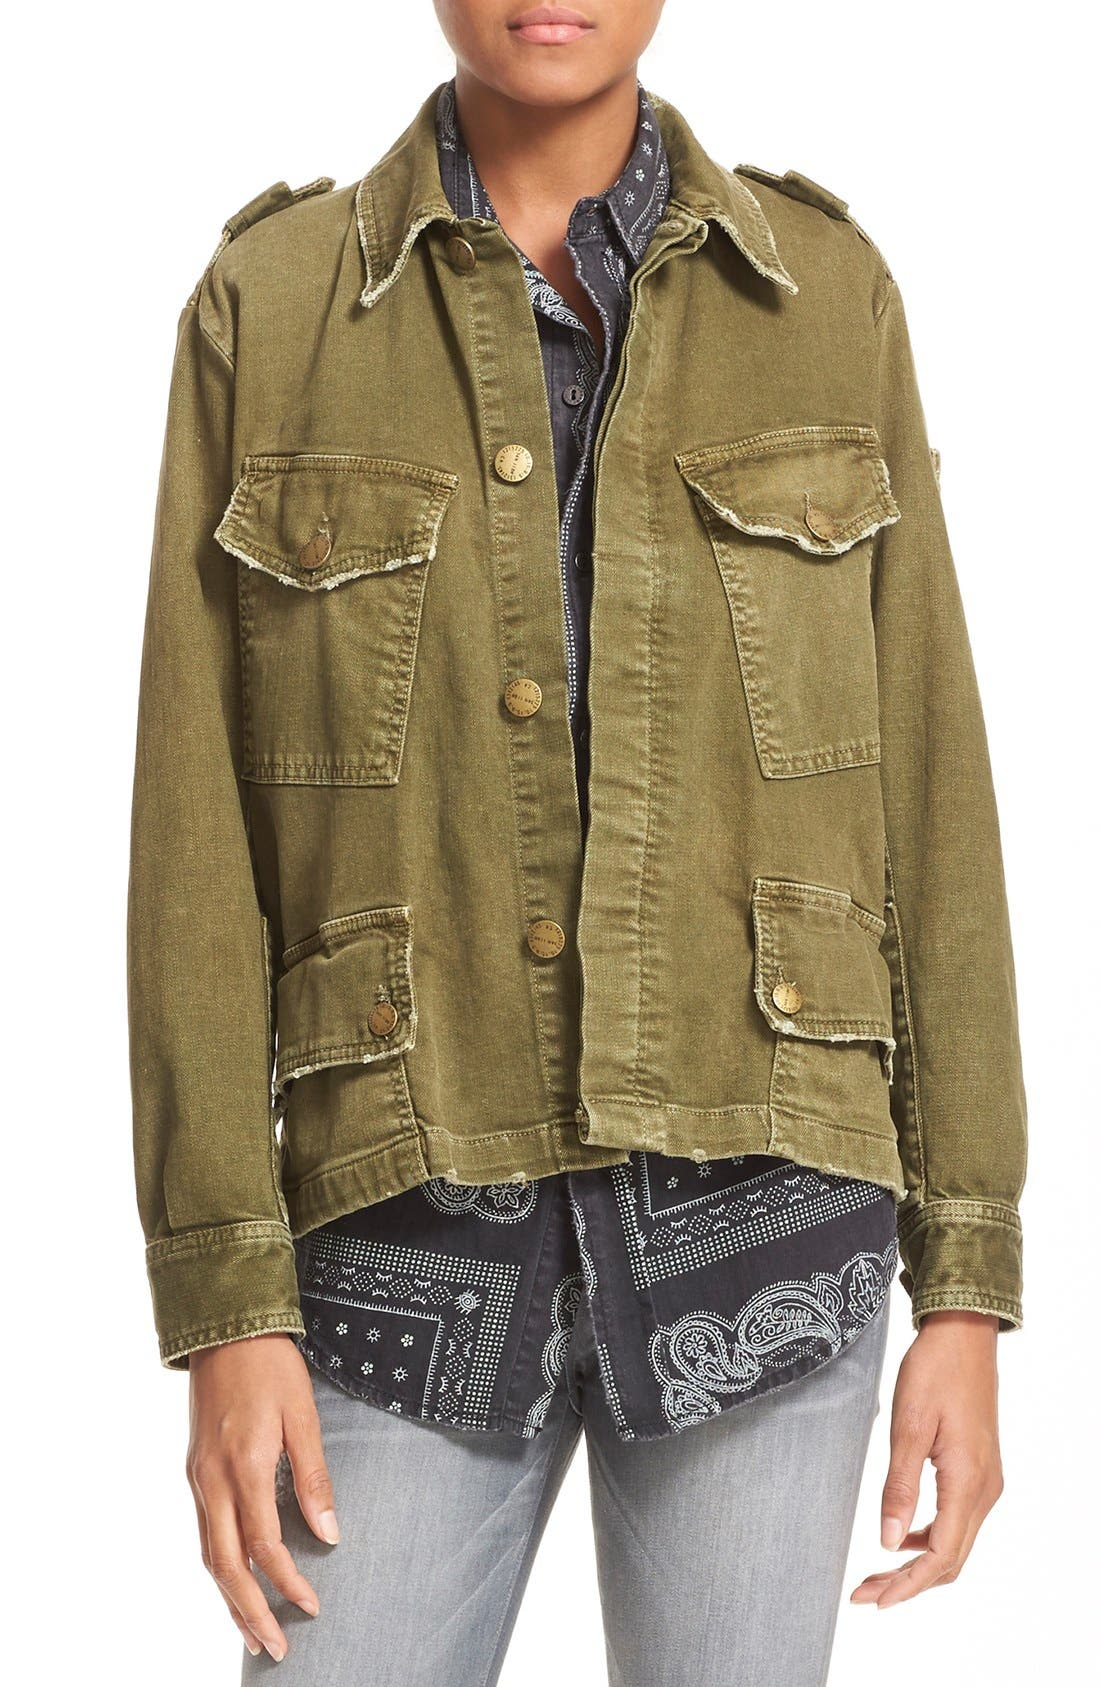 Alternate Image 1 Selected - Current/Elliott 'Slanted Pocket' Army Jacket